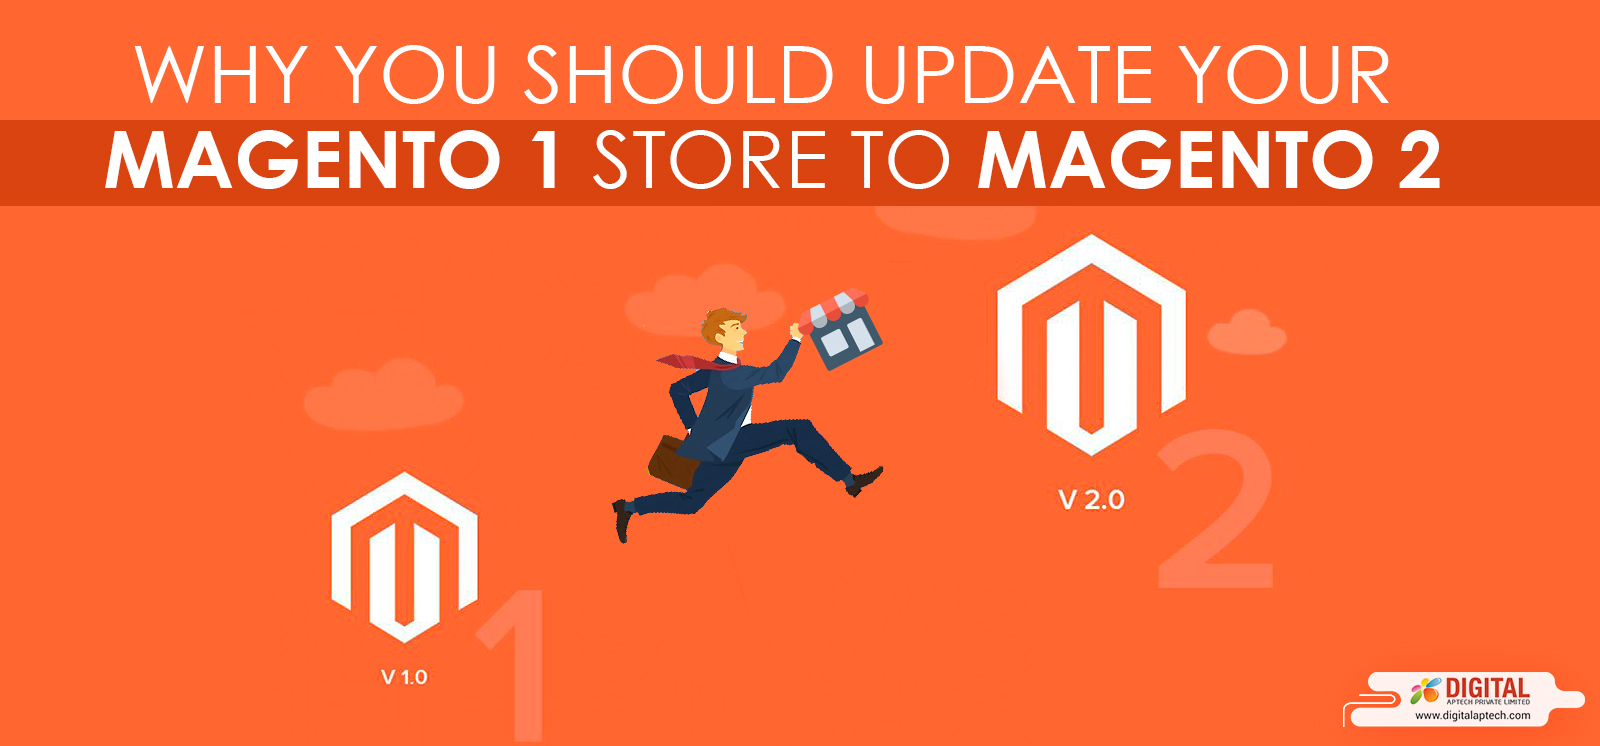 Why You Should Update Your Magento 1 Store to Magento 2